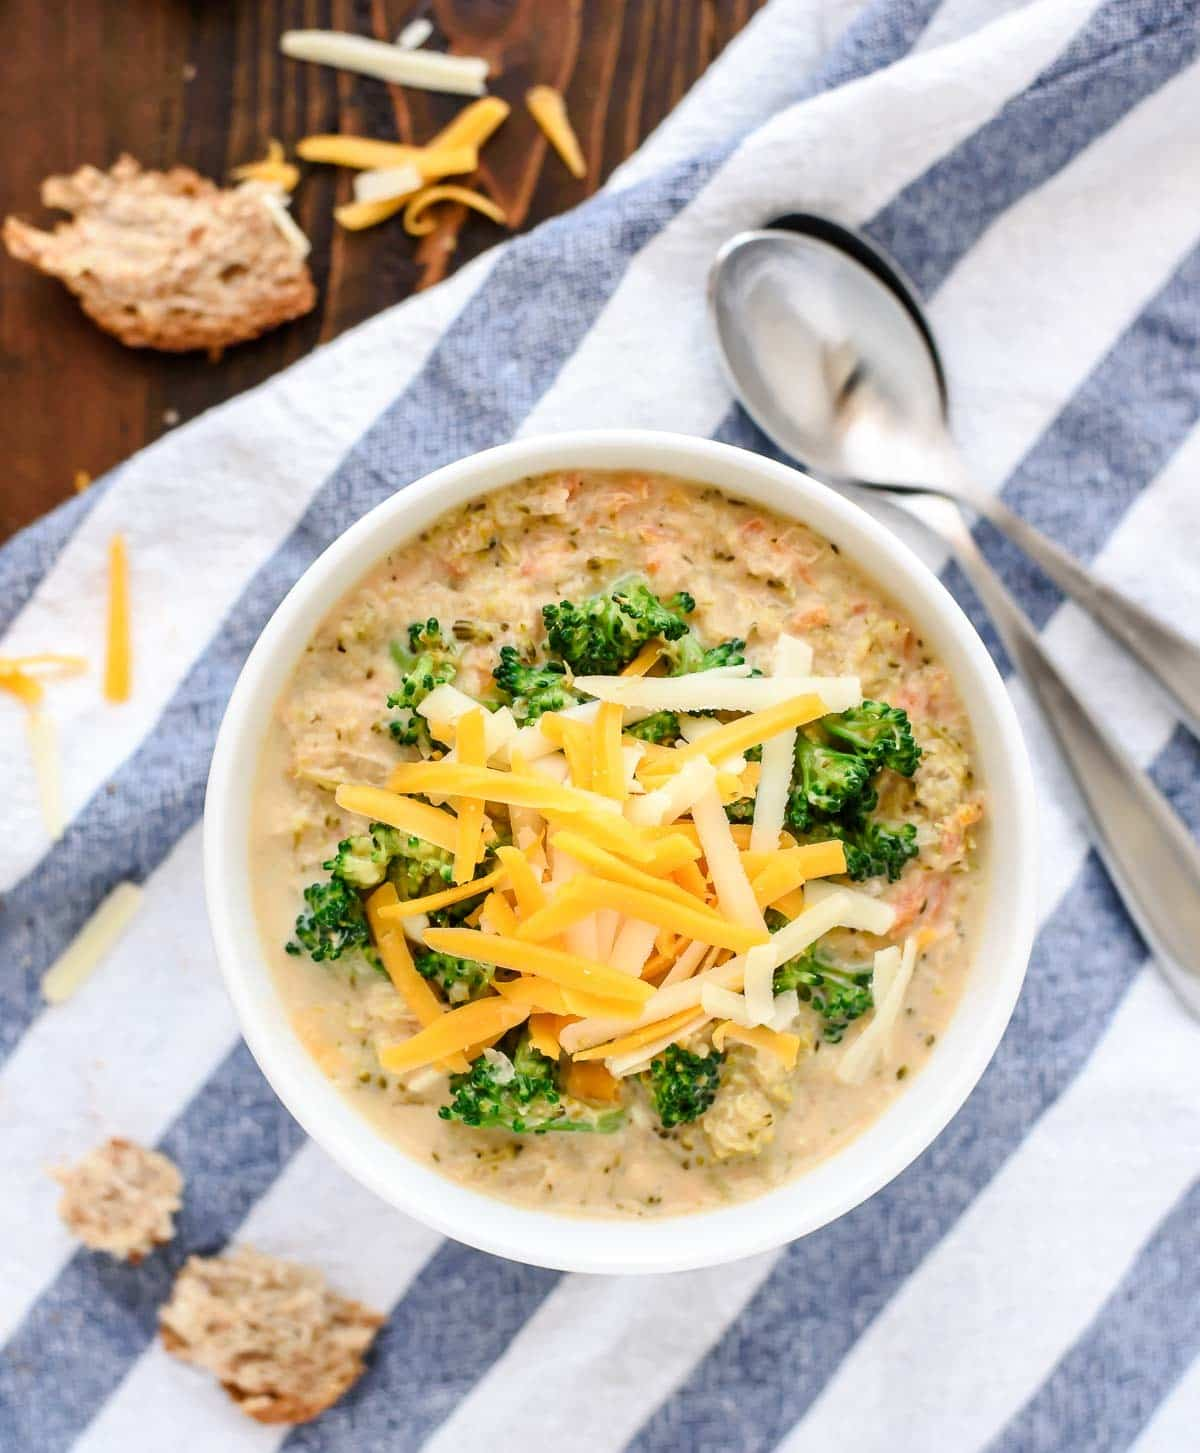 a white soup bowl filled with Slow Cooker Broccoli and Cheese Soup